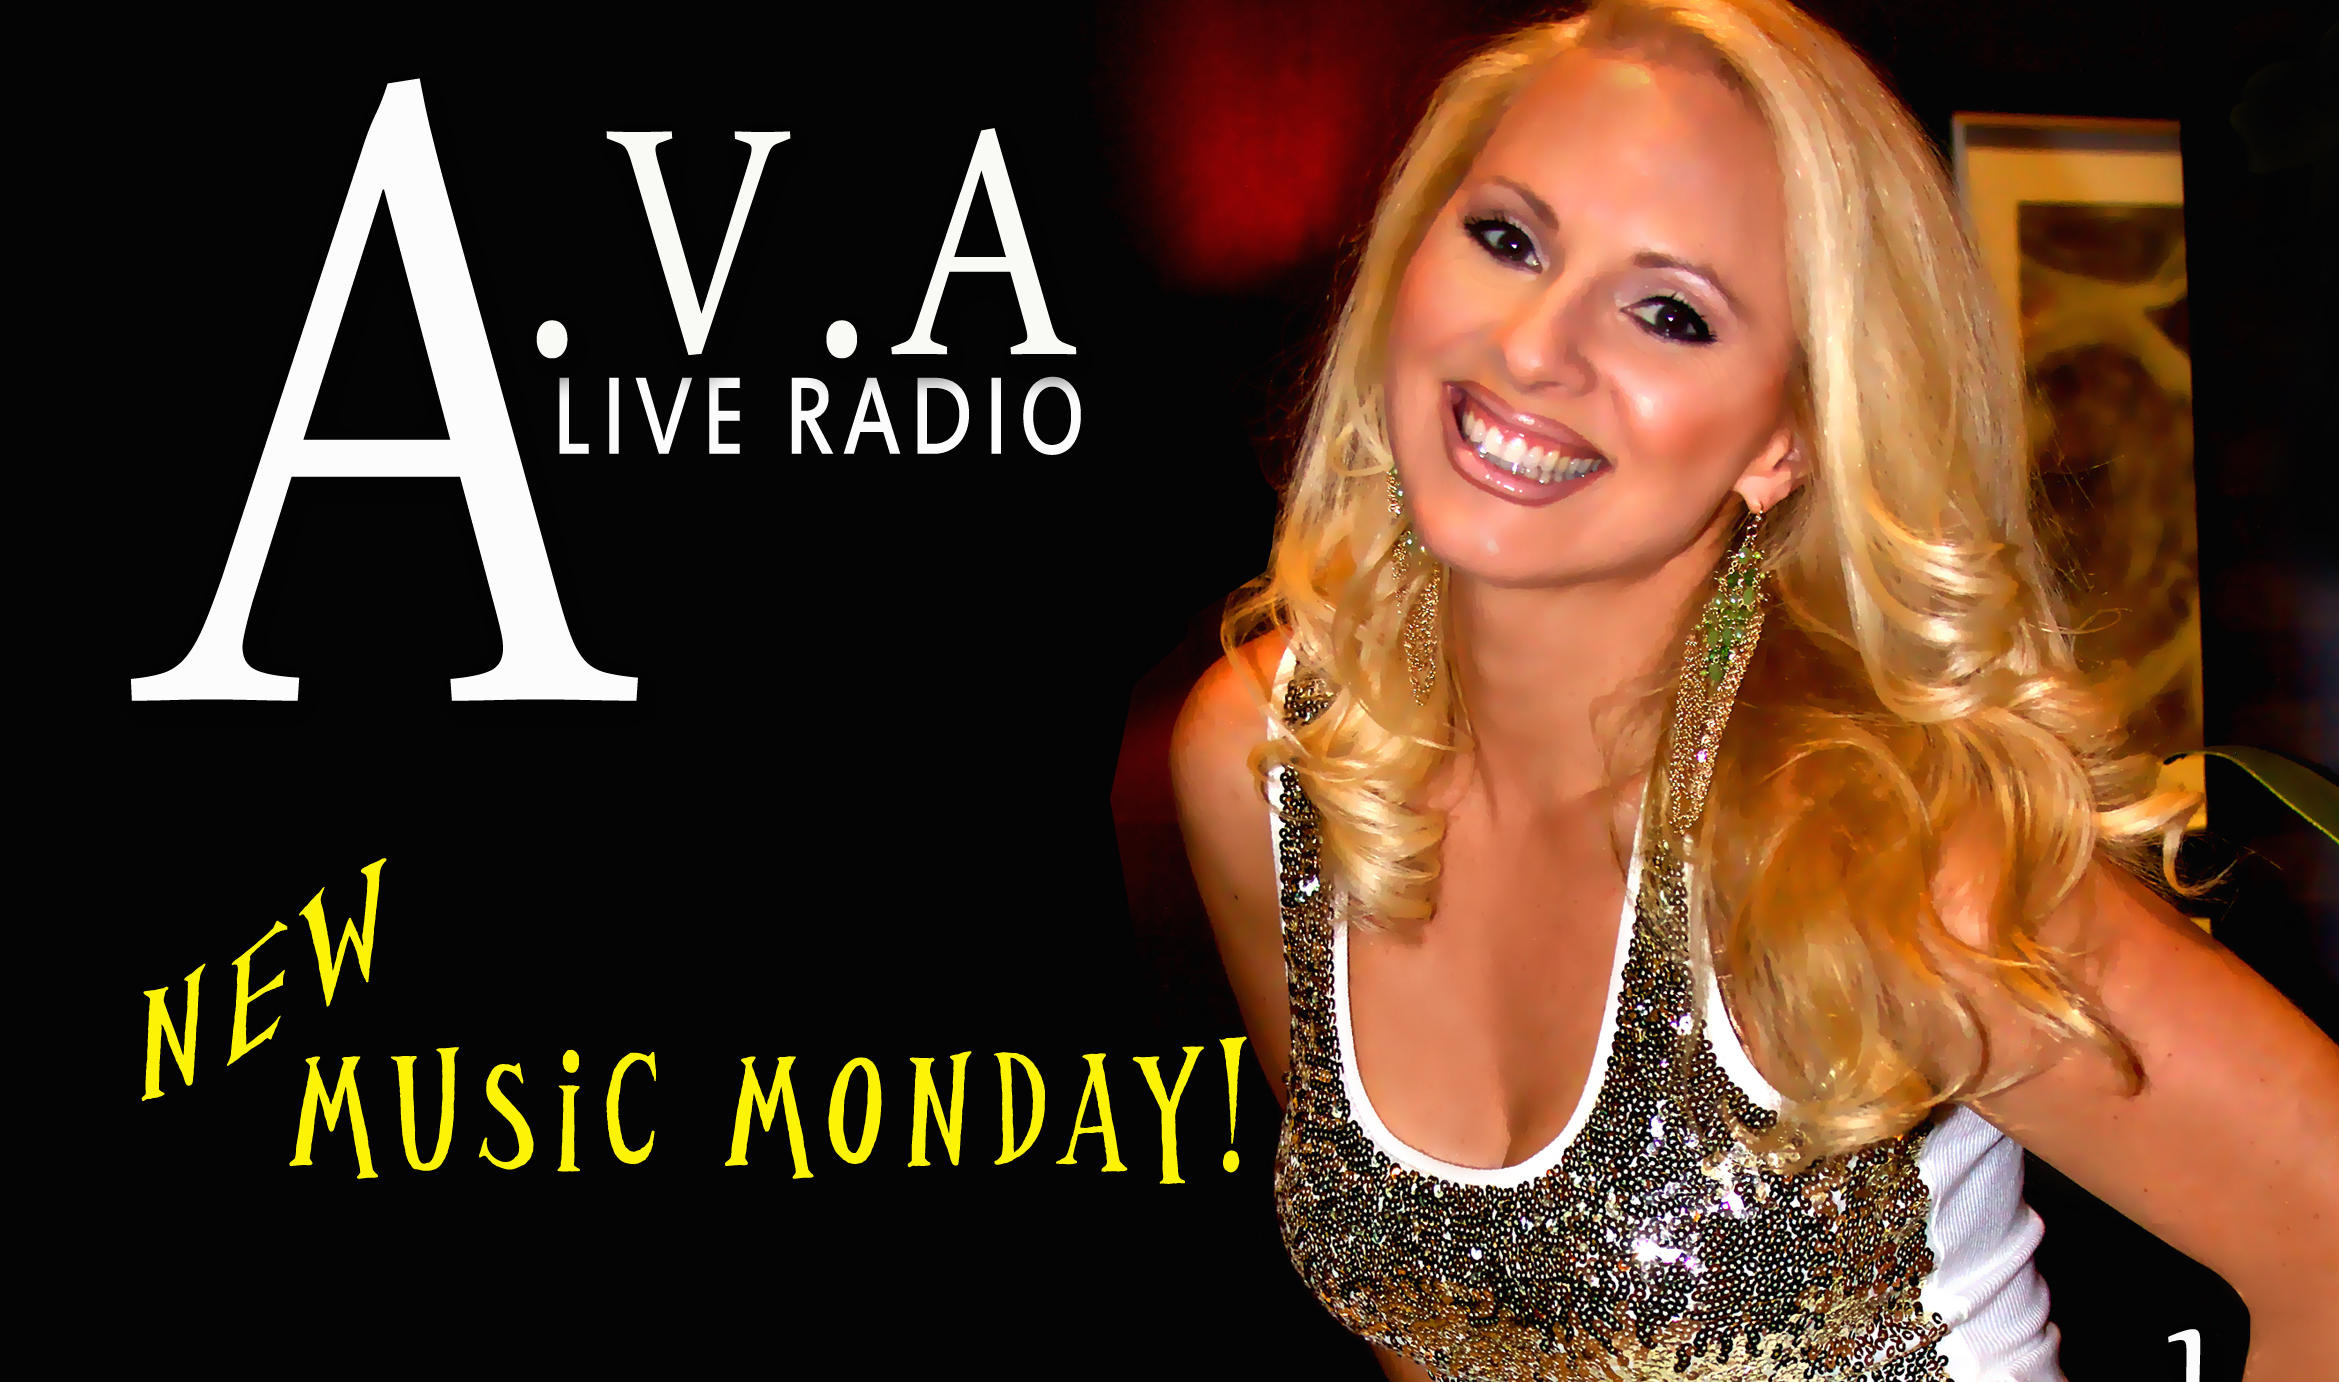 12.5 New Music Monday with Jacqueline Jax